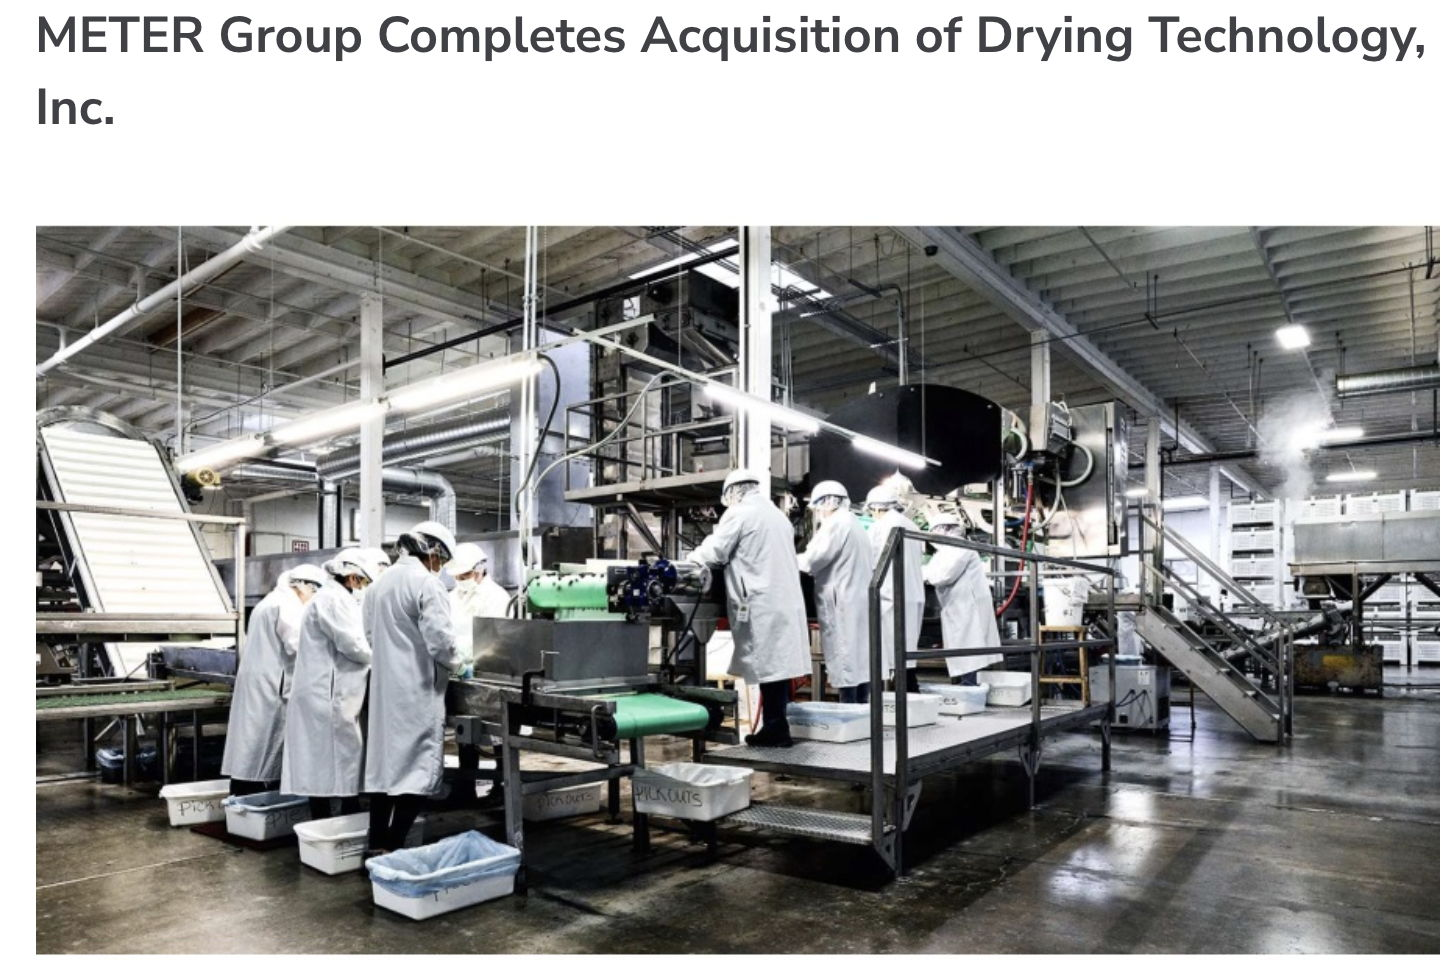 Food Safety Magazine: METER Group Completes Acquisition of Drying Technology, Inc.